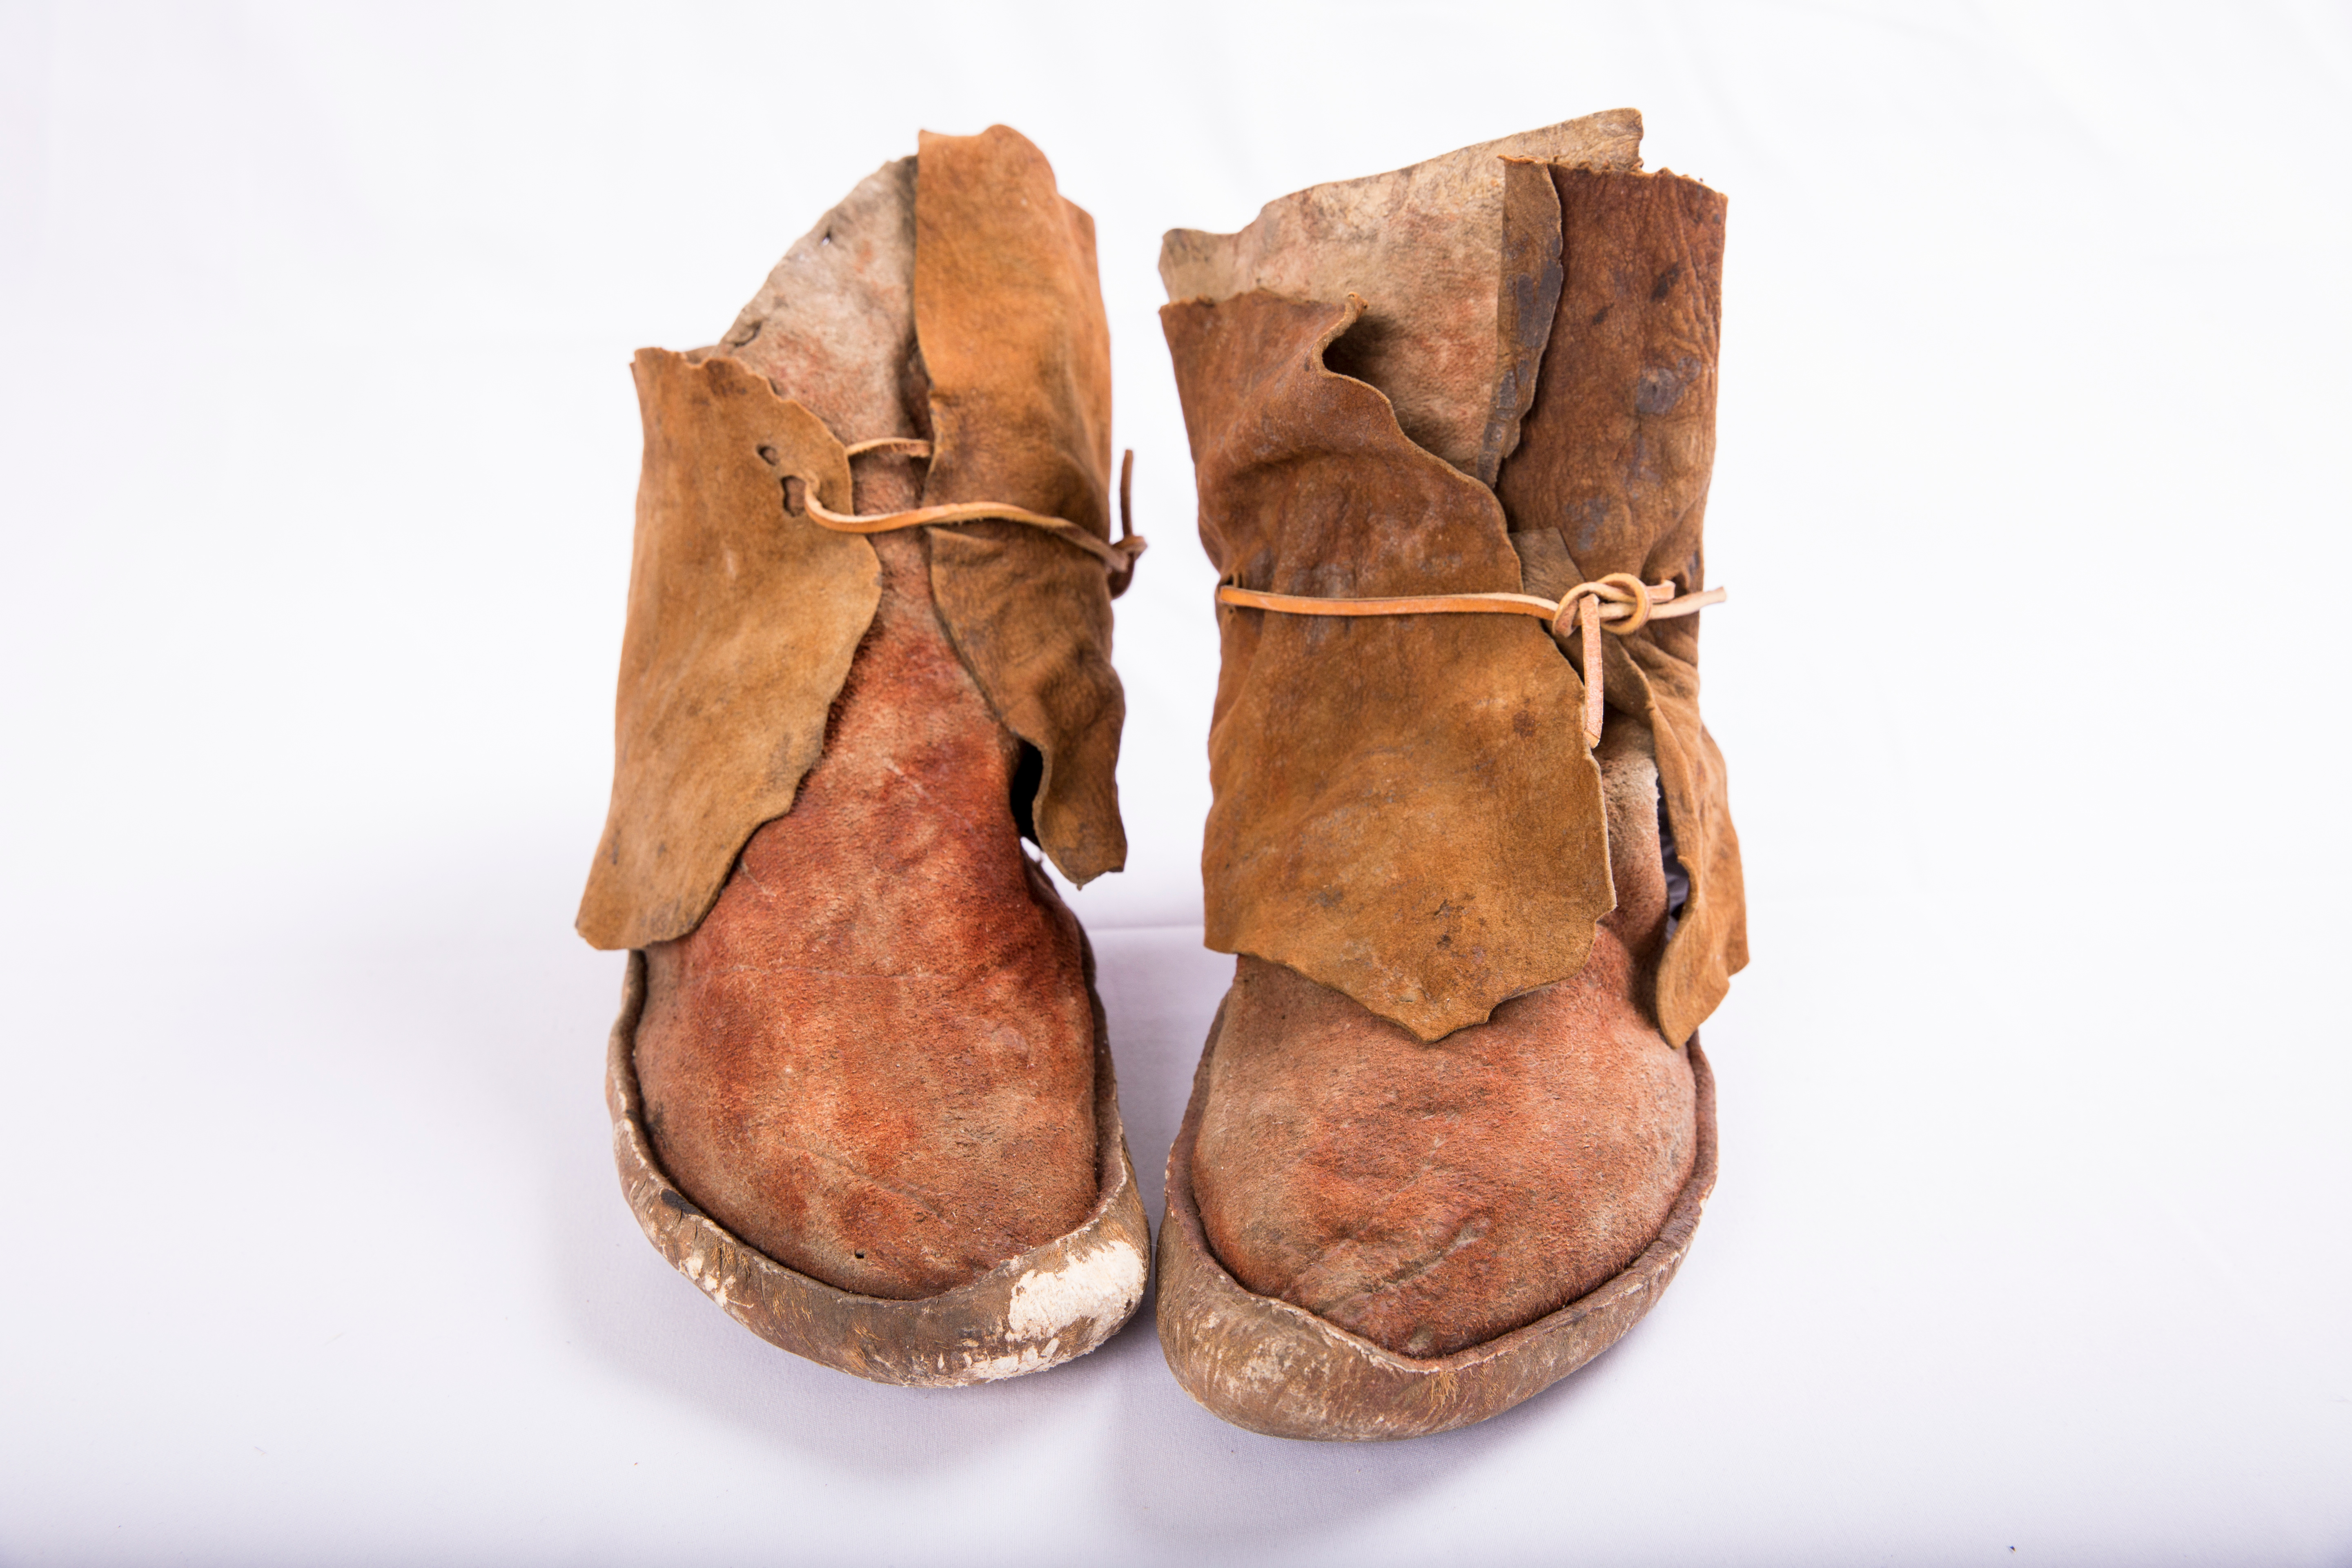 Scuffed pair of moccasins with hard sole, possibly Navajo or Hopi